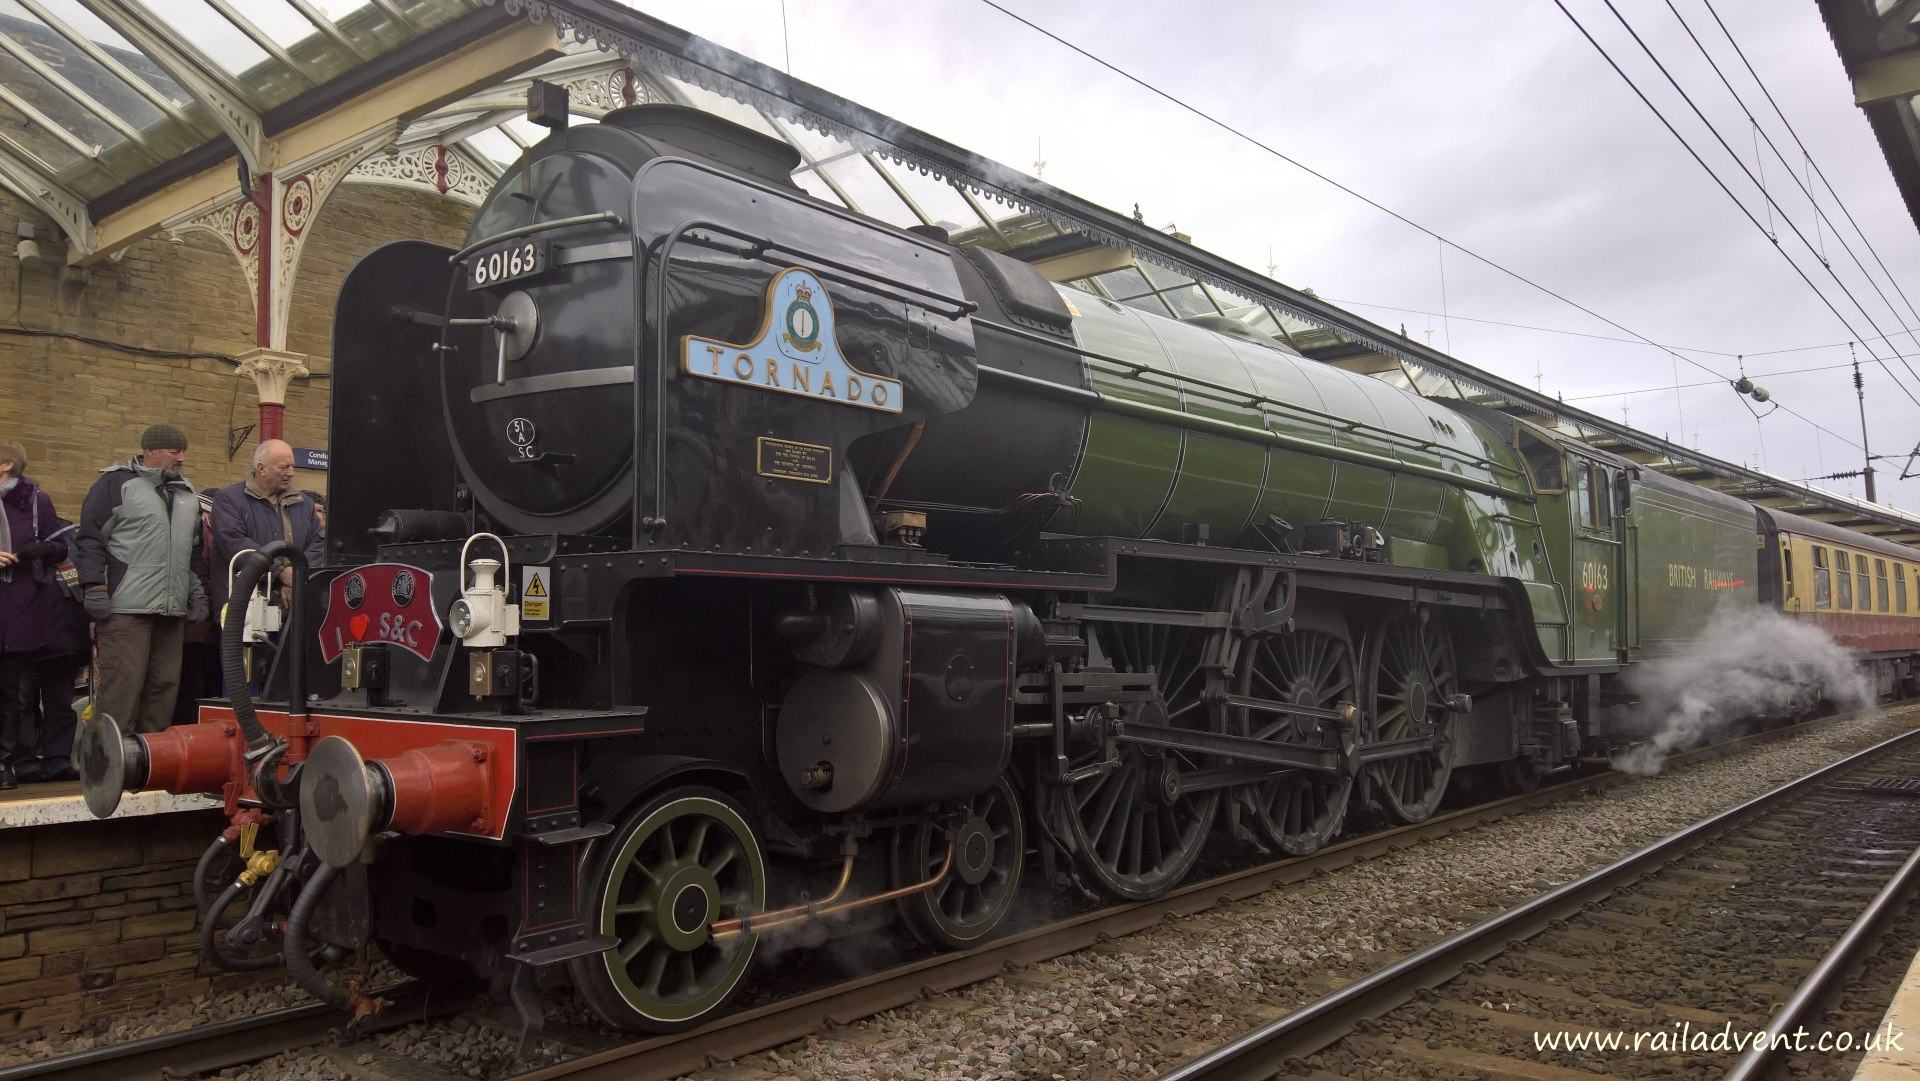 UK Mainline steam locomotive movements, tours and test run